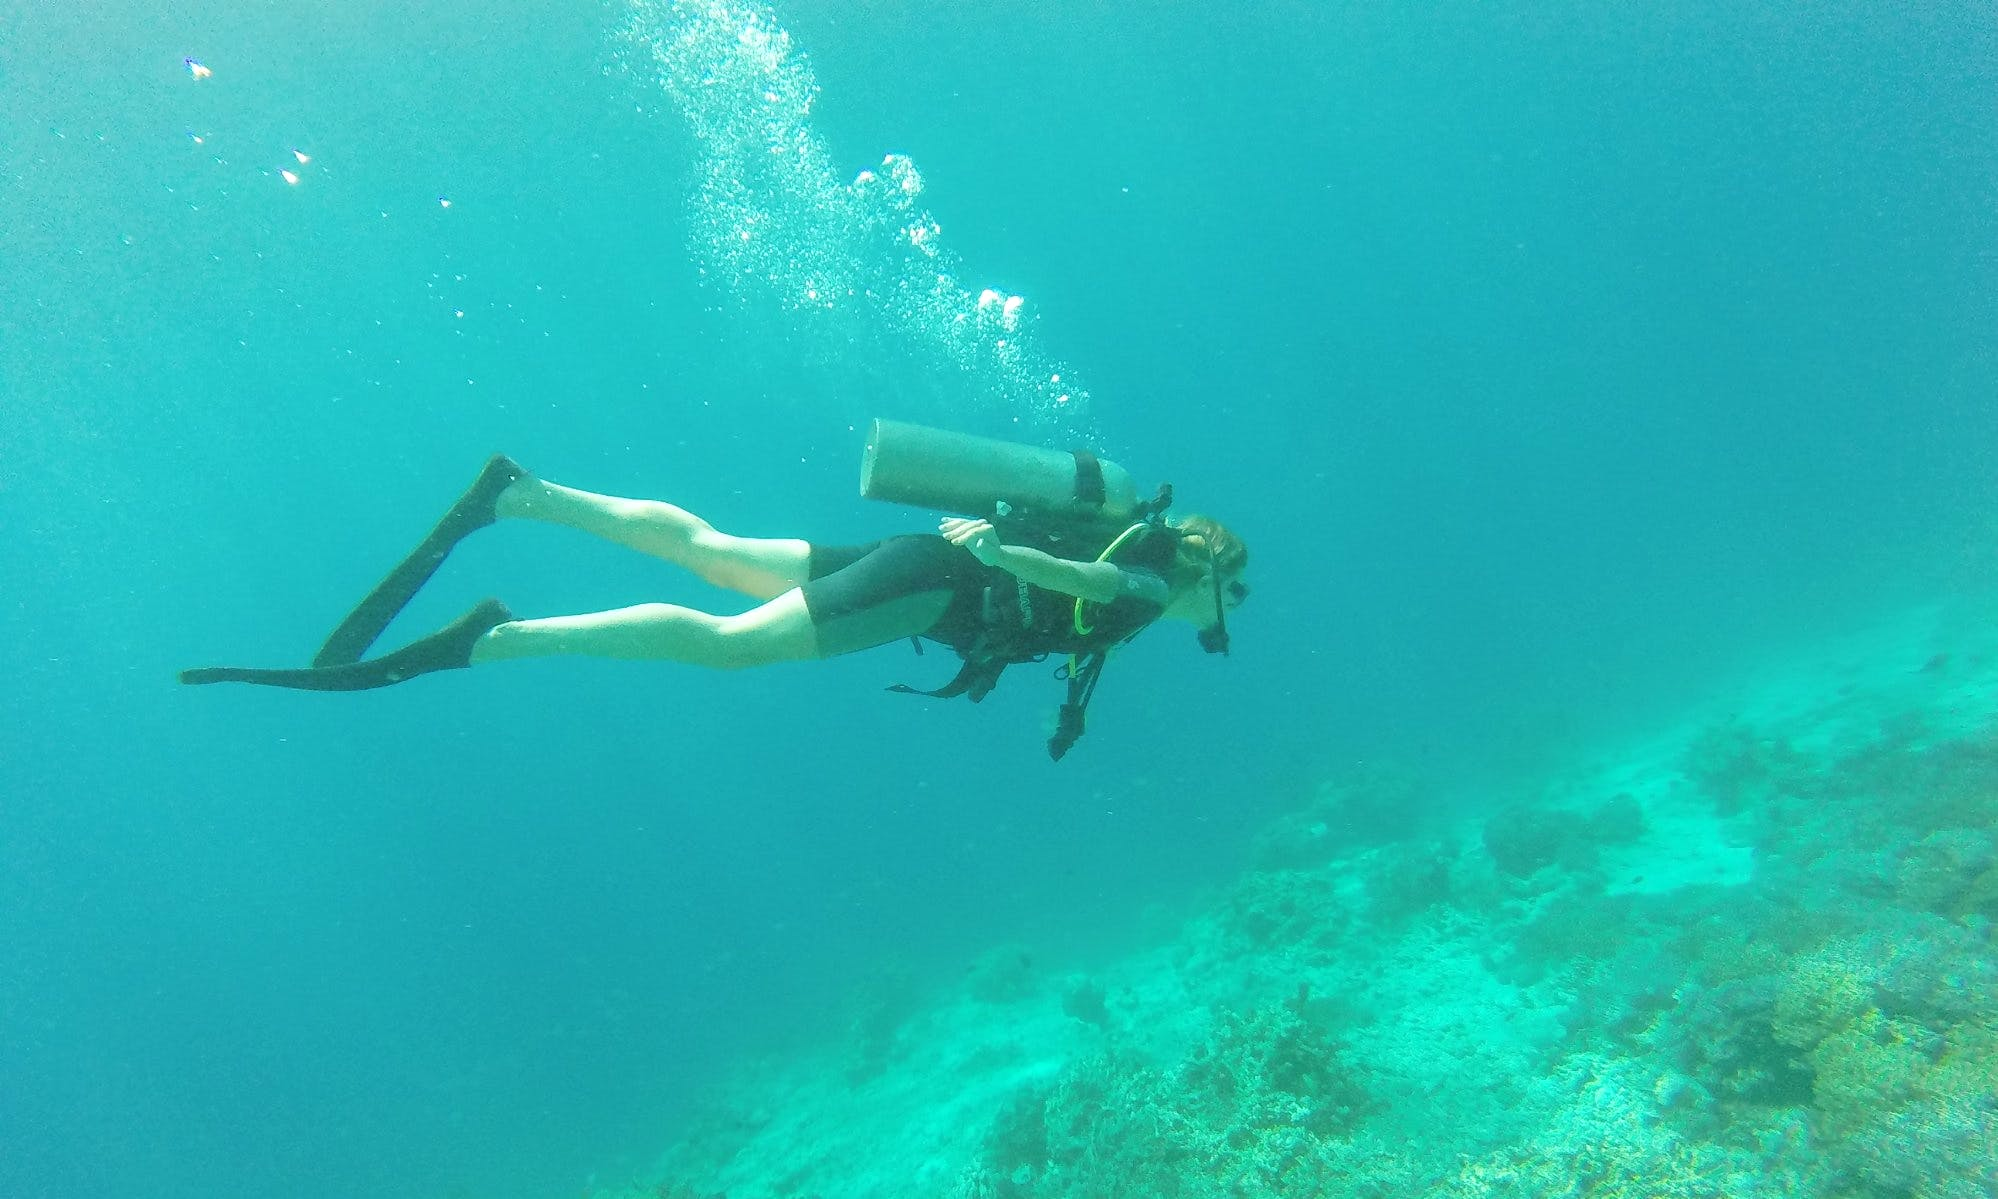 Diving Courses in Gerokgak, Bali